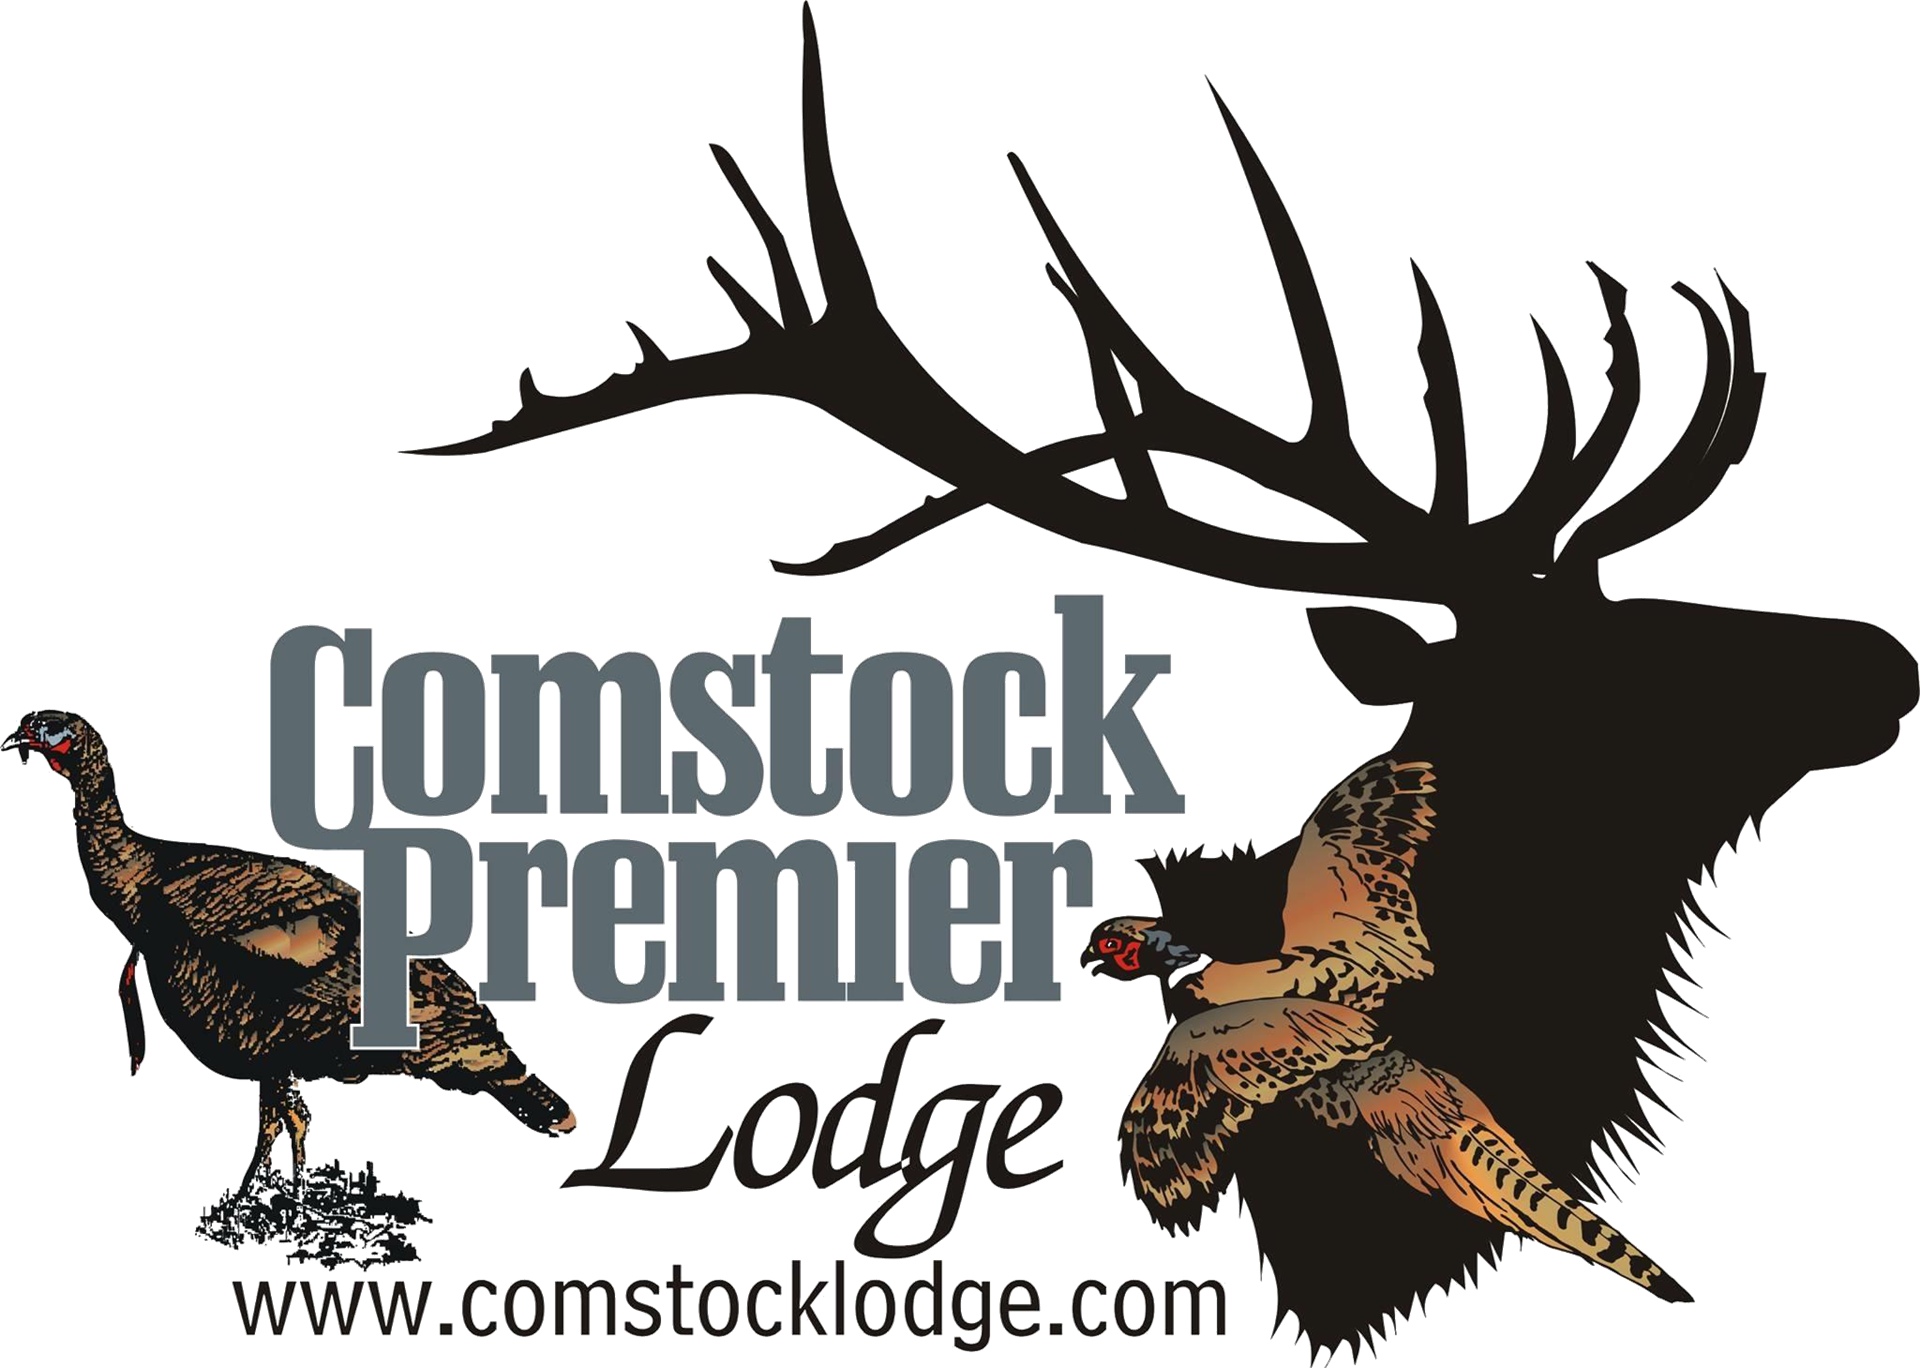 Comstock Premier Lodge LLC